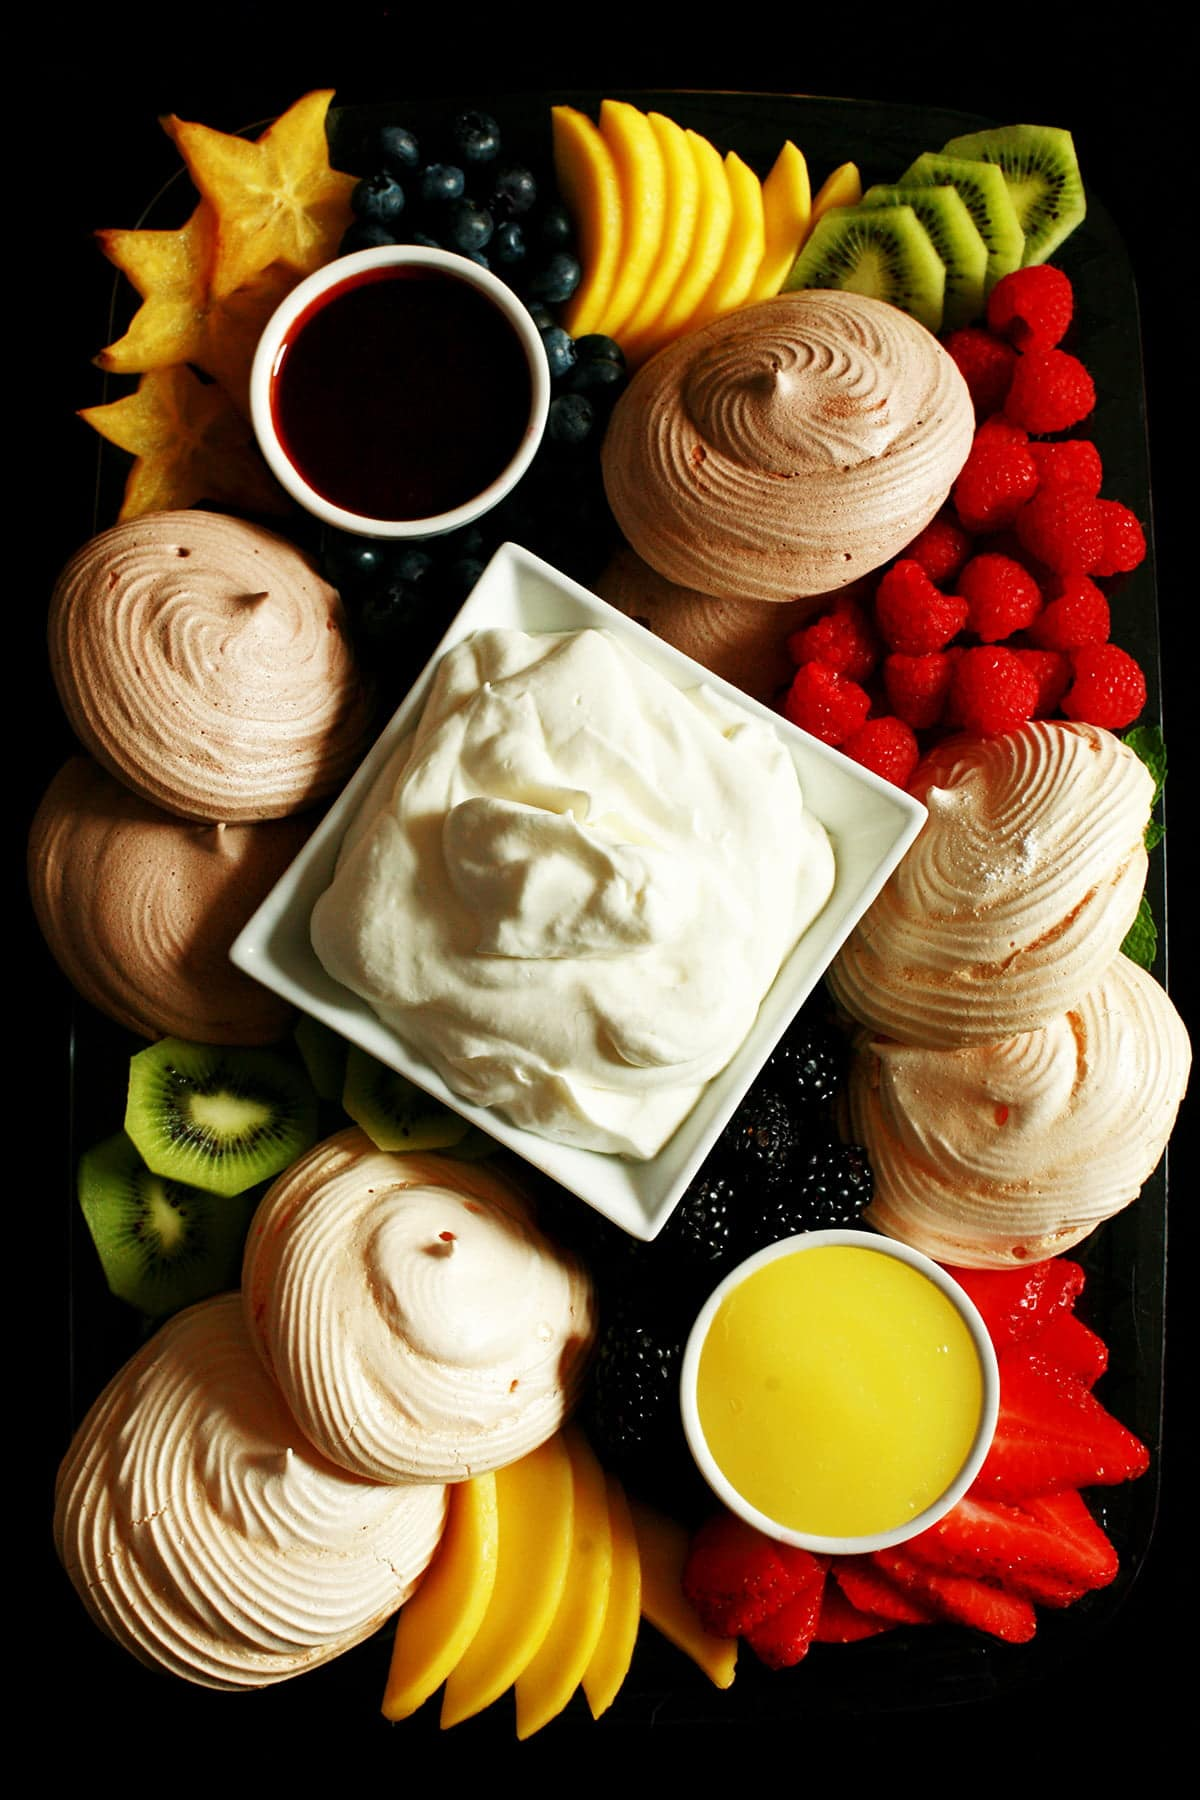 A Pavlova Grazing Board: A bowl of whipped cream and two little bowls of sauce - lemon curd and chocolate sauce - are surrounded by mini pavlova meringues and a selection of fresh fruits.